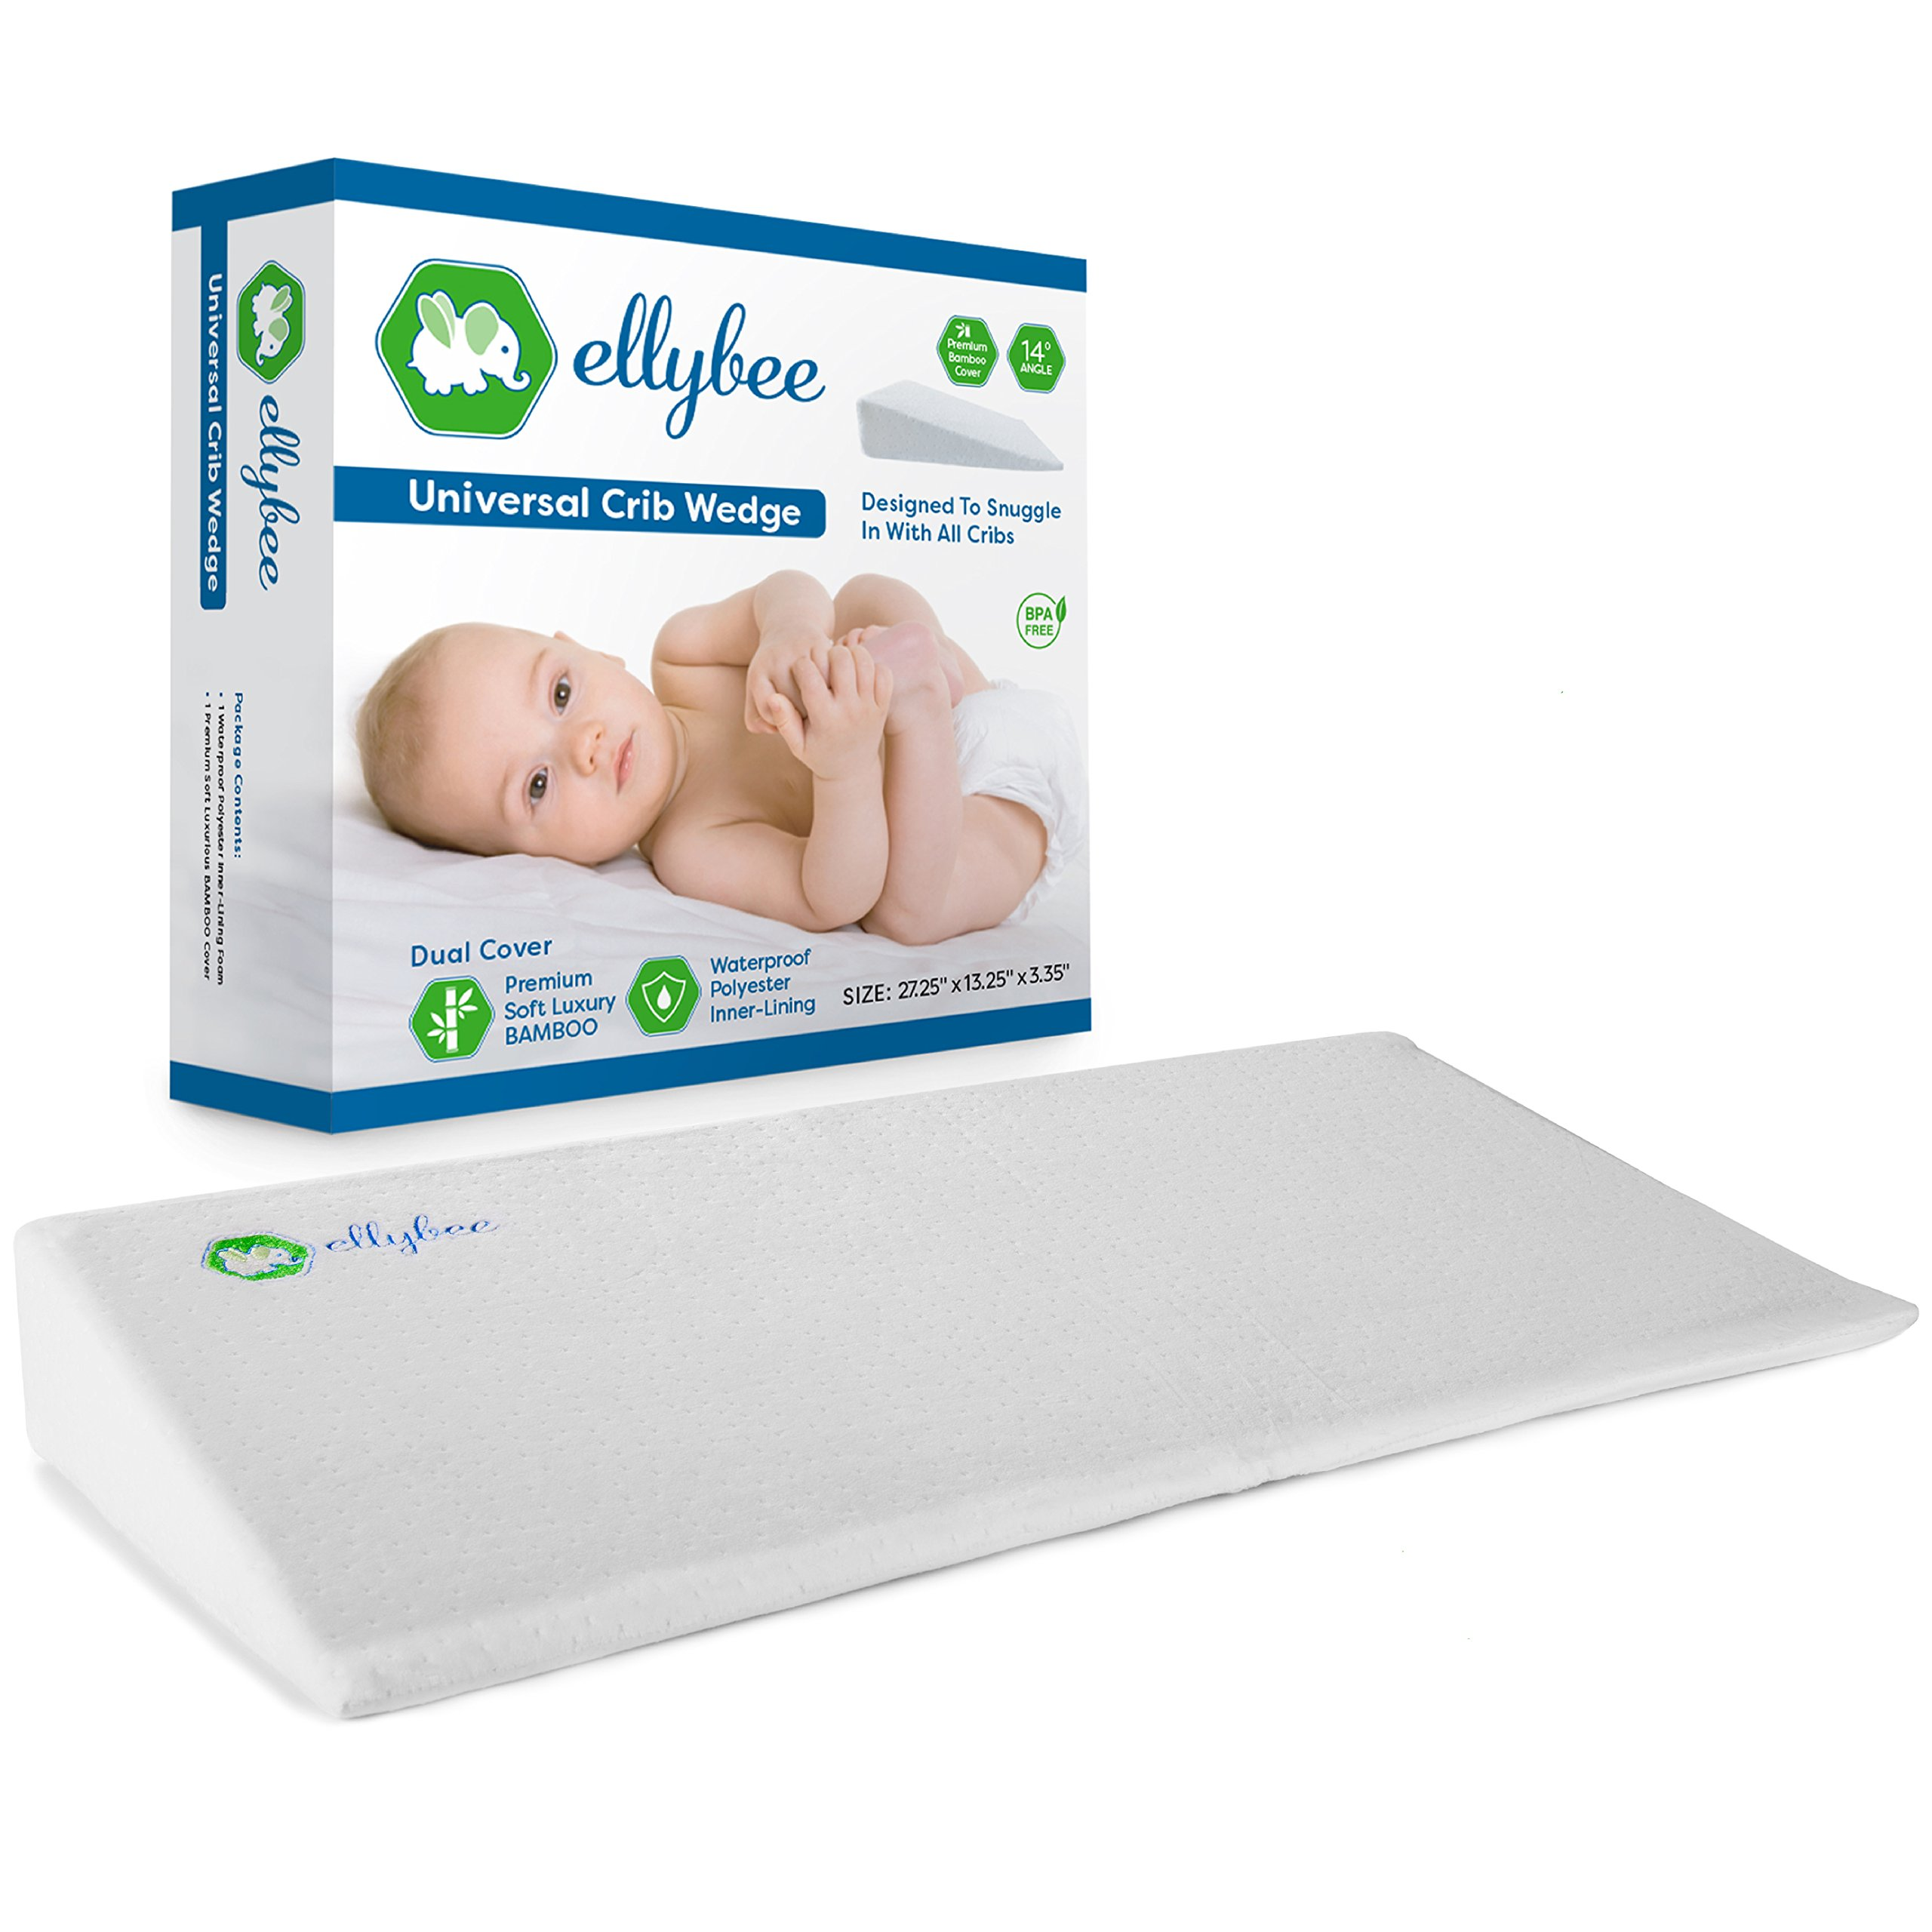 Ellybee Universal Crib Wedge Pillow for Baby Crib Mattress | Acid Reflux |  Premium Bamboo Hypoallergenic Washable & Waterproof Cover | Foldable  14-degree ...